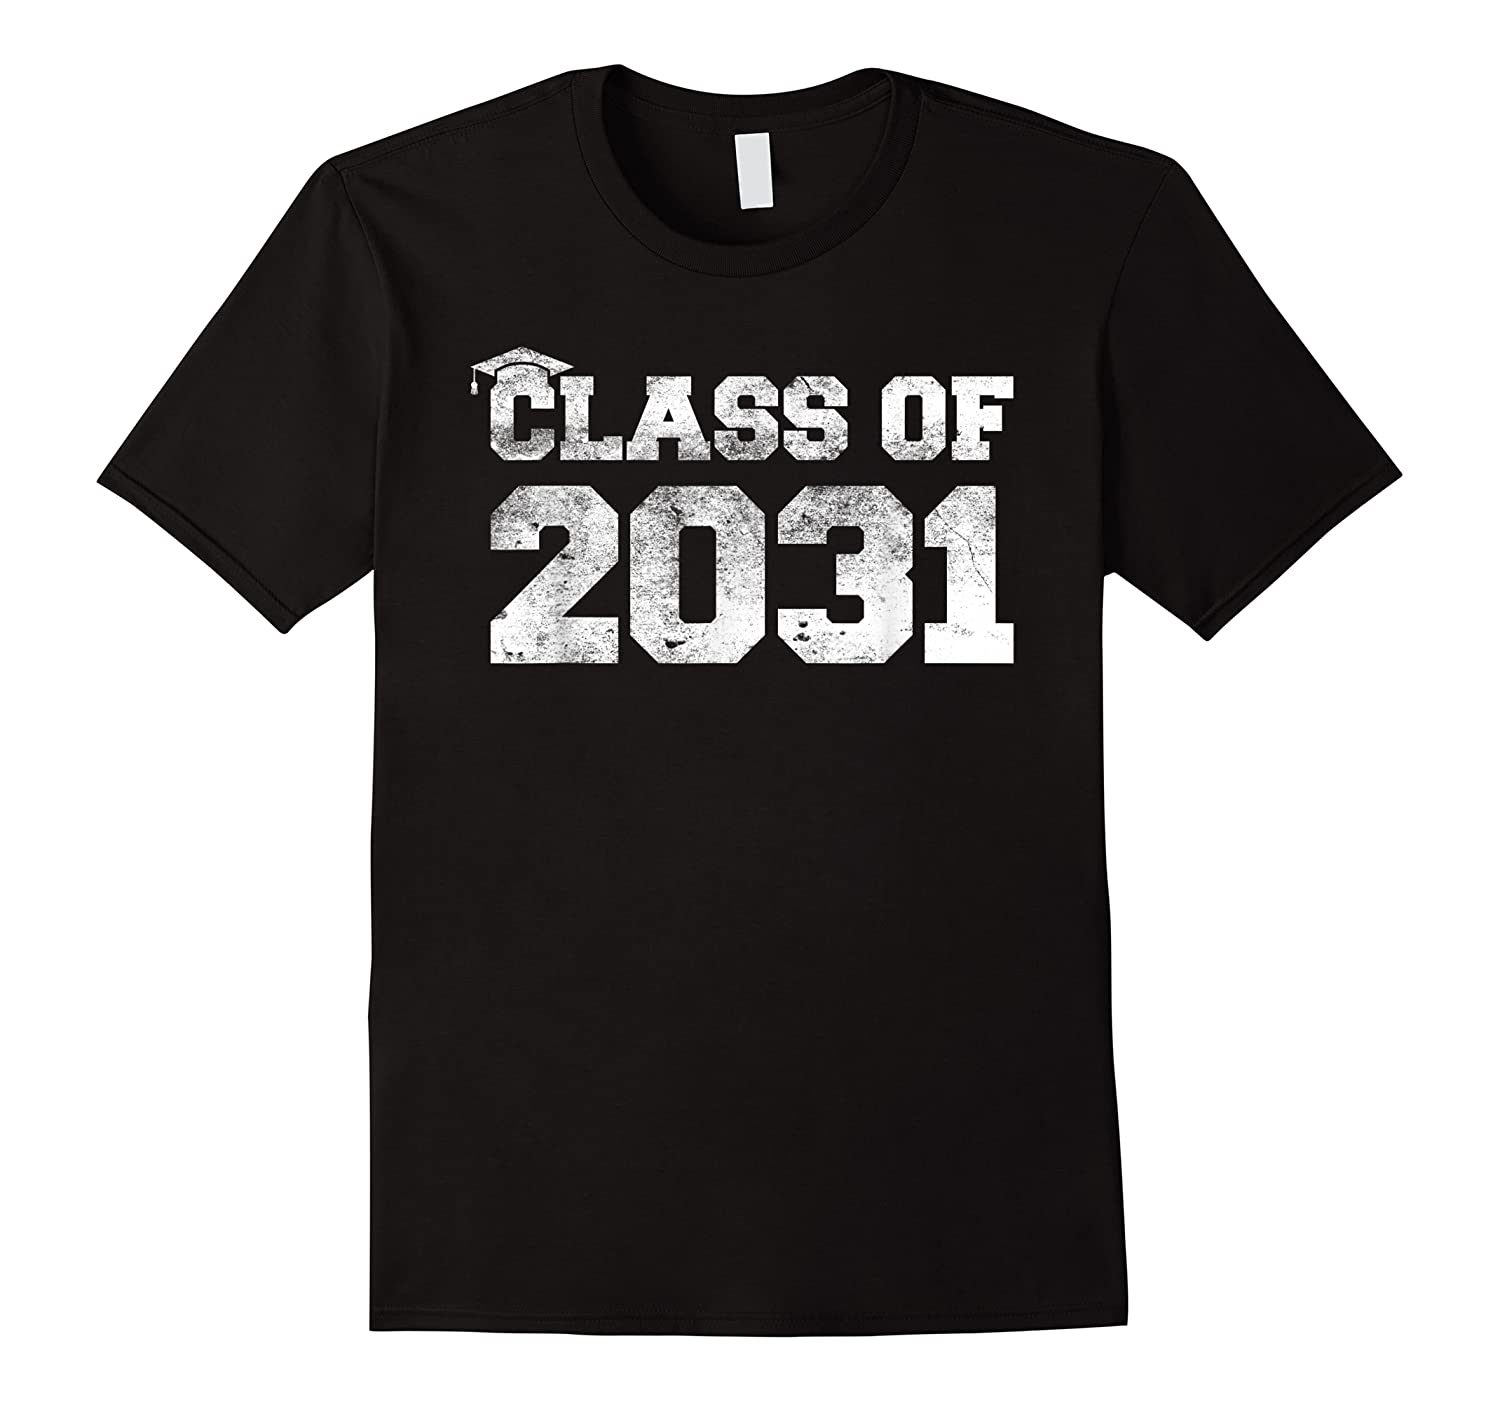 Class Of 2031 Graduation Kindergarten Back To School Shirts